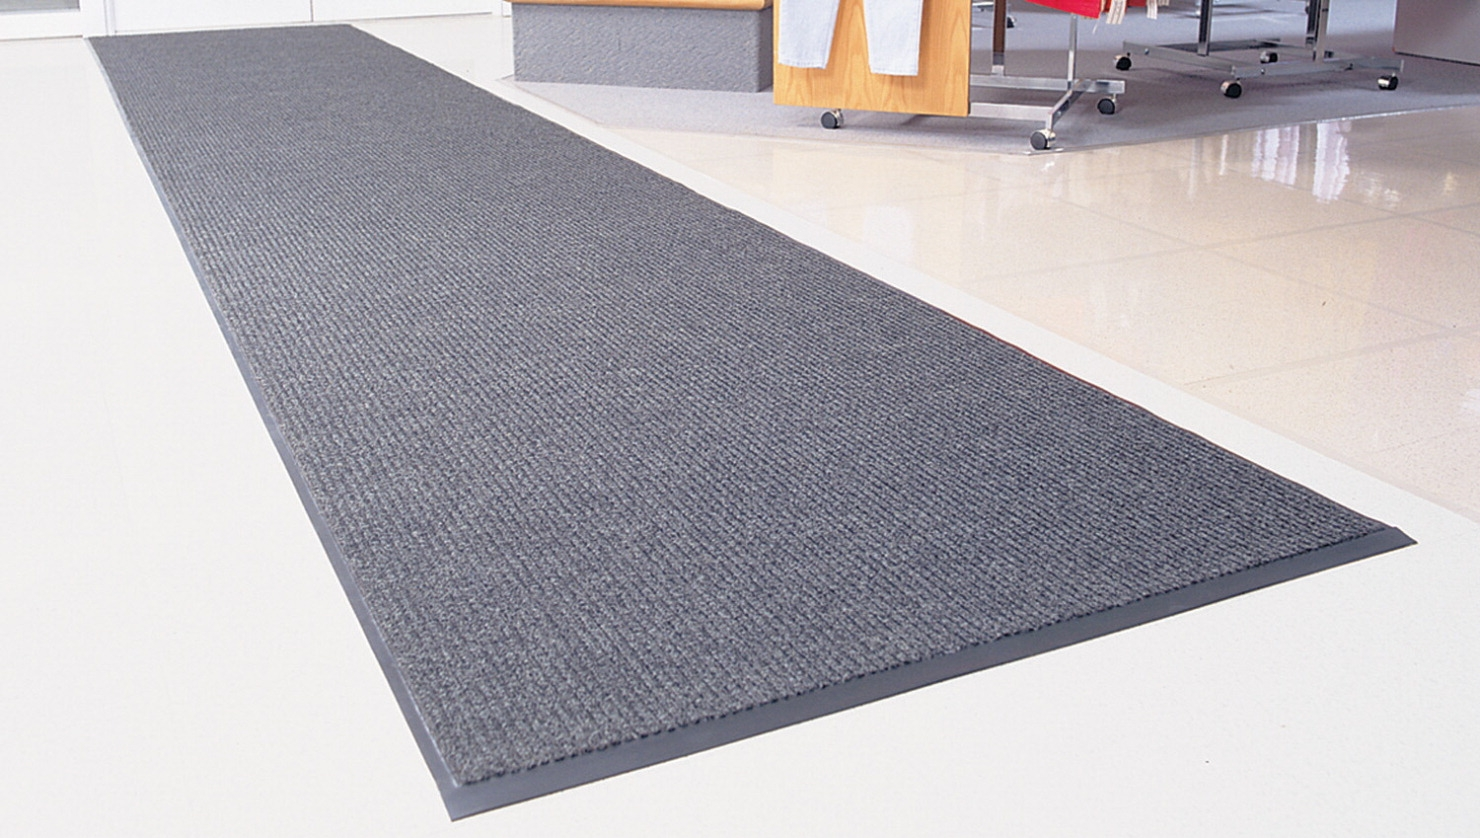 Heritage Rib Entrance Mat; 3 X 5 Ft; 3/8 In Thickness; Vinyl Backing; Charcoal - 079767 - Martial Arts Martial Arts Floors Mats 079767